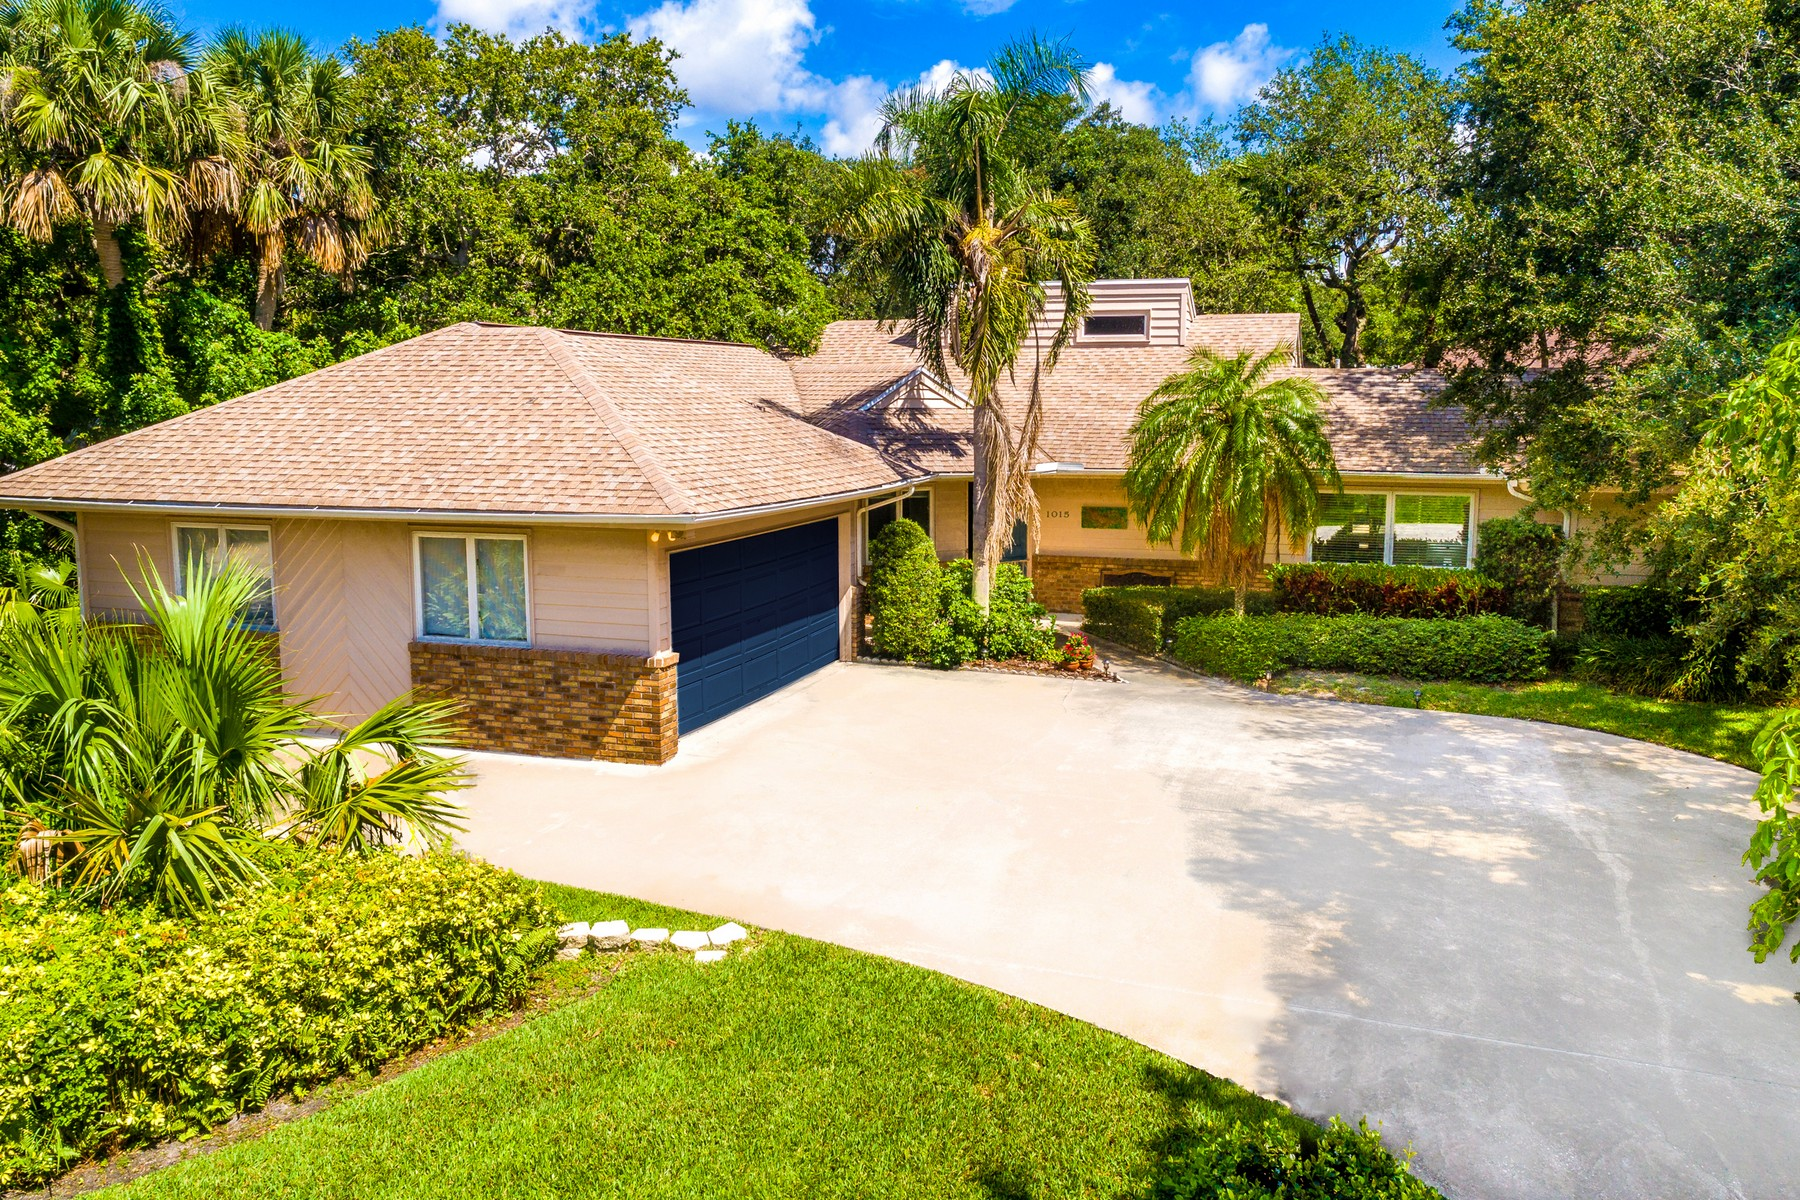 Single Family Home for Sale at Lovely Four Bedroom Home on Vero's Barrier Island 1015 Mangrove Lane Vero Beach, Florida 32963 United States